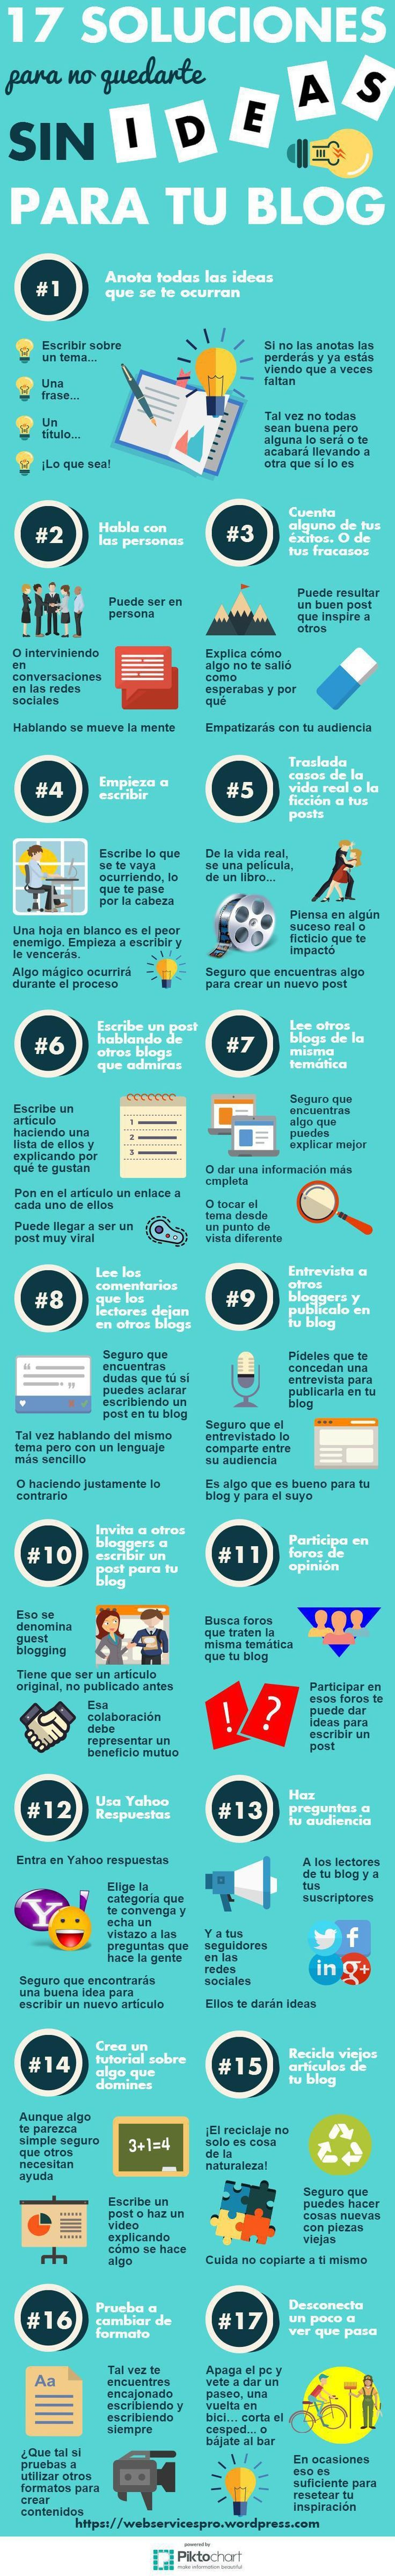 17 Soluciones para no quedarte sin ideas para tu Blog #infografia (scheduled via http://www.tailwindapp.com?utm_source=pinterest&utm_medium=twpin&utm_content=post155573627&utm_campaign=scheduler_attribution)